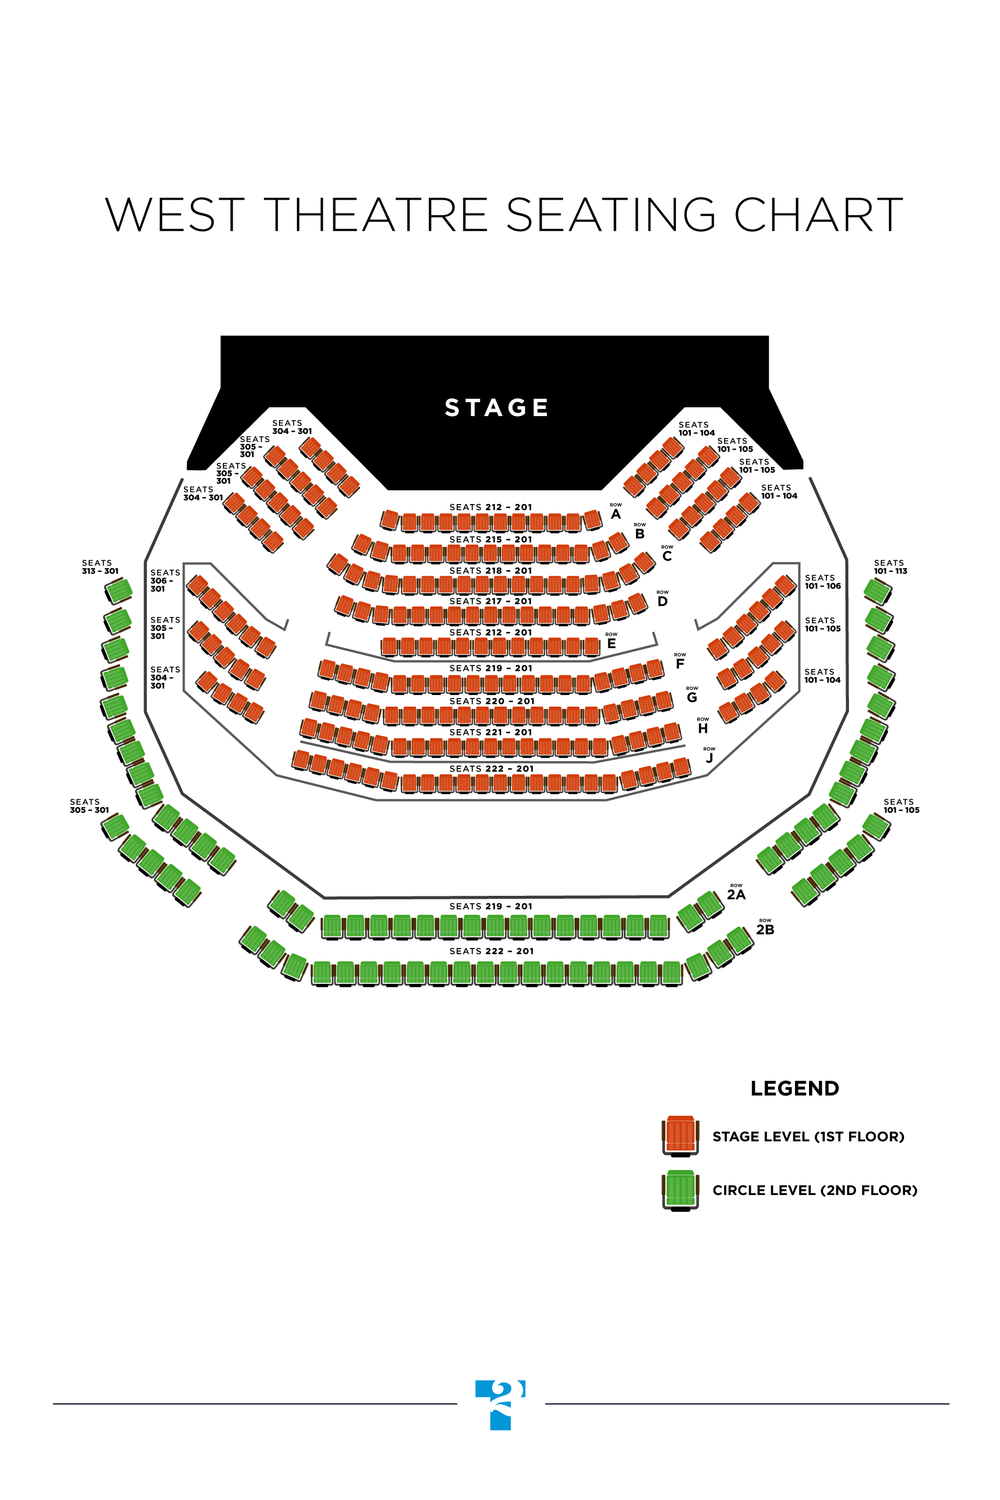 West-Theatre-Seating-Chart-Web-1080.png